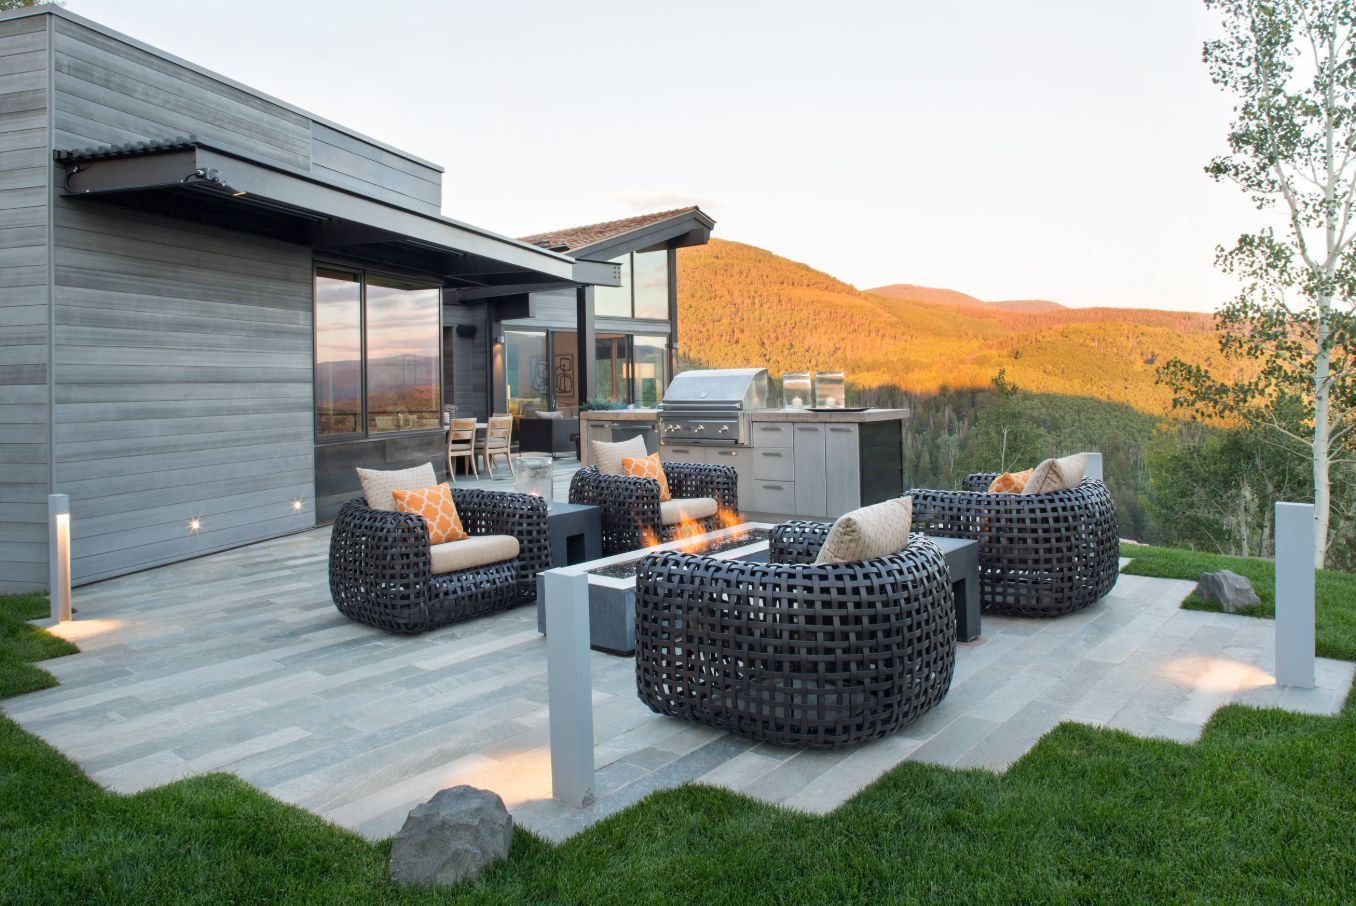 The sleek patio looks like an extension of the house.